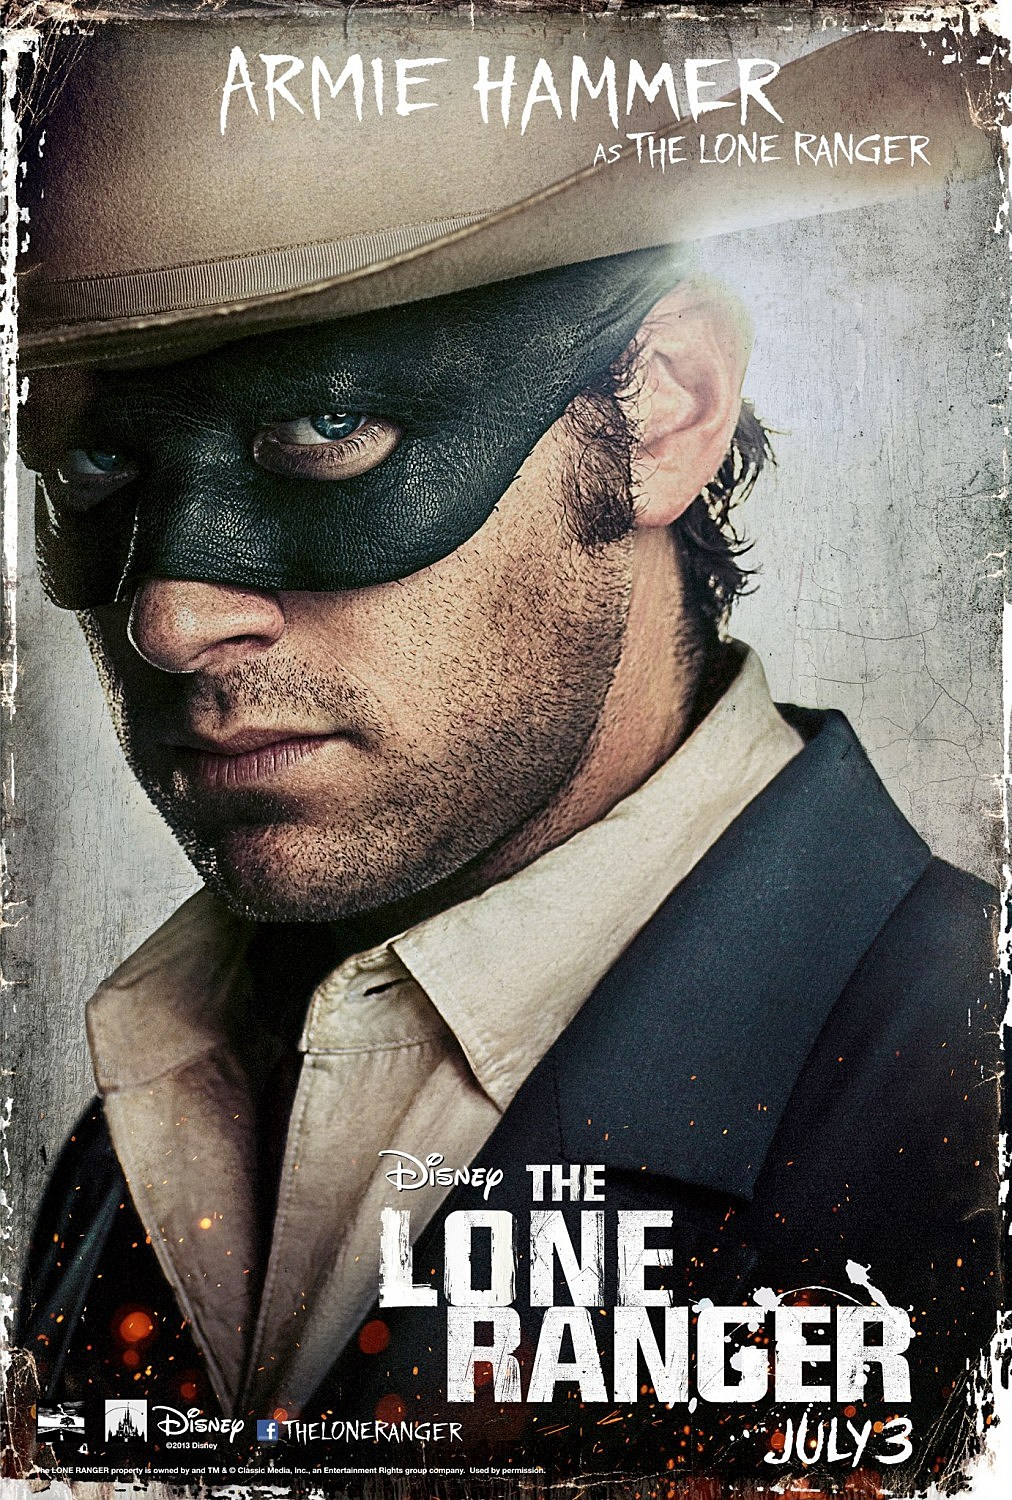 New 'The Lone Ranger' Posters Show Off Johnny Depp and Armie Hammer [